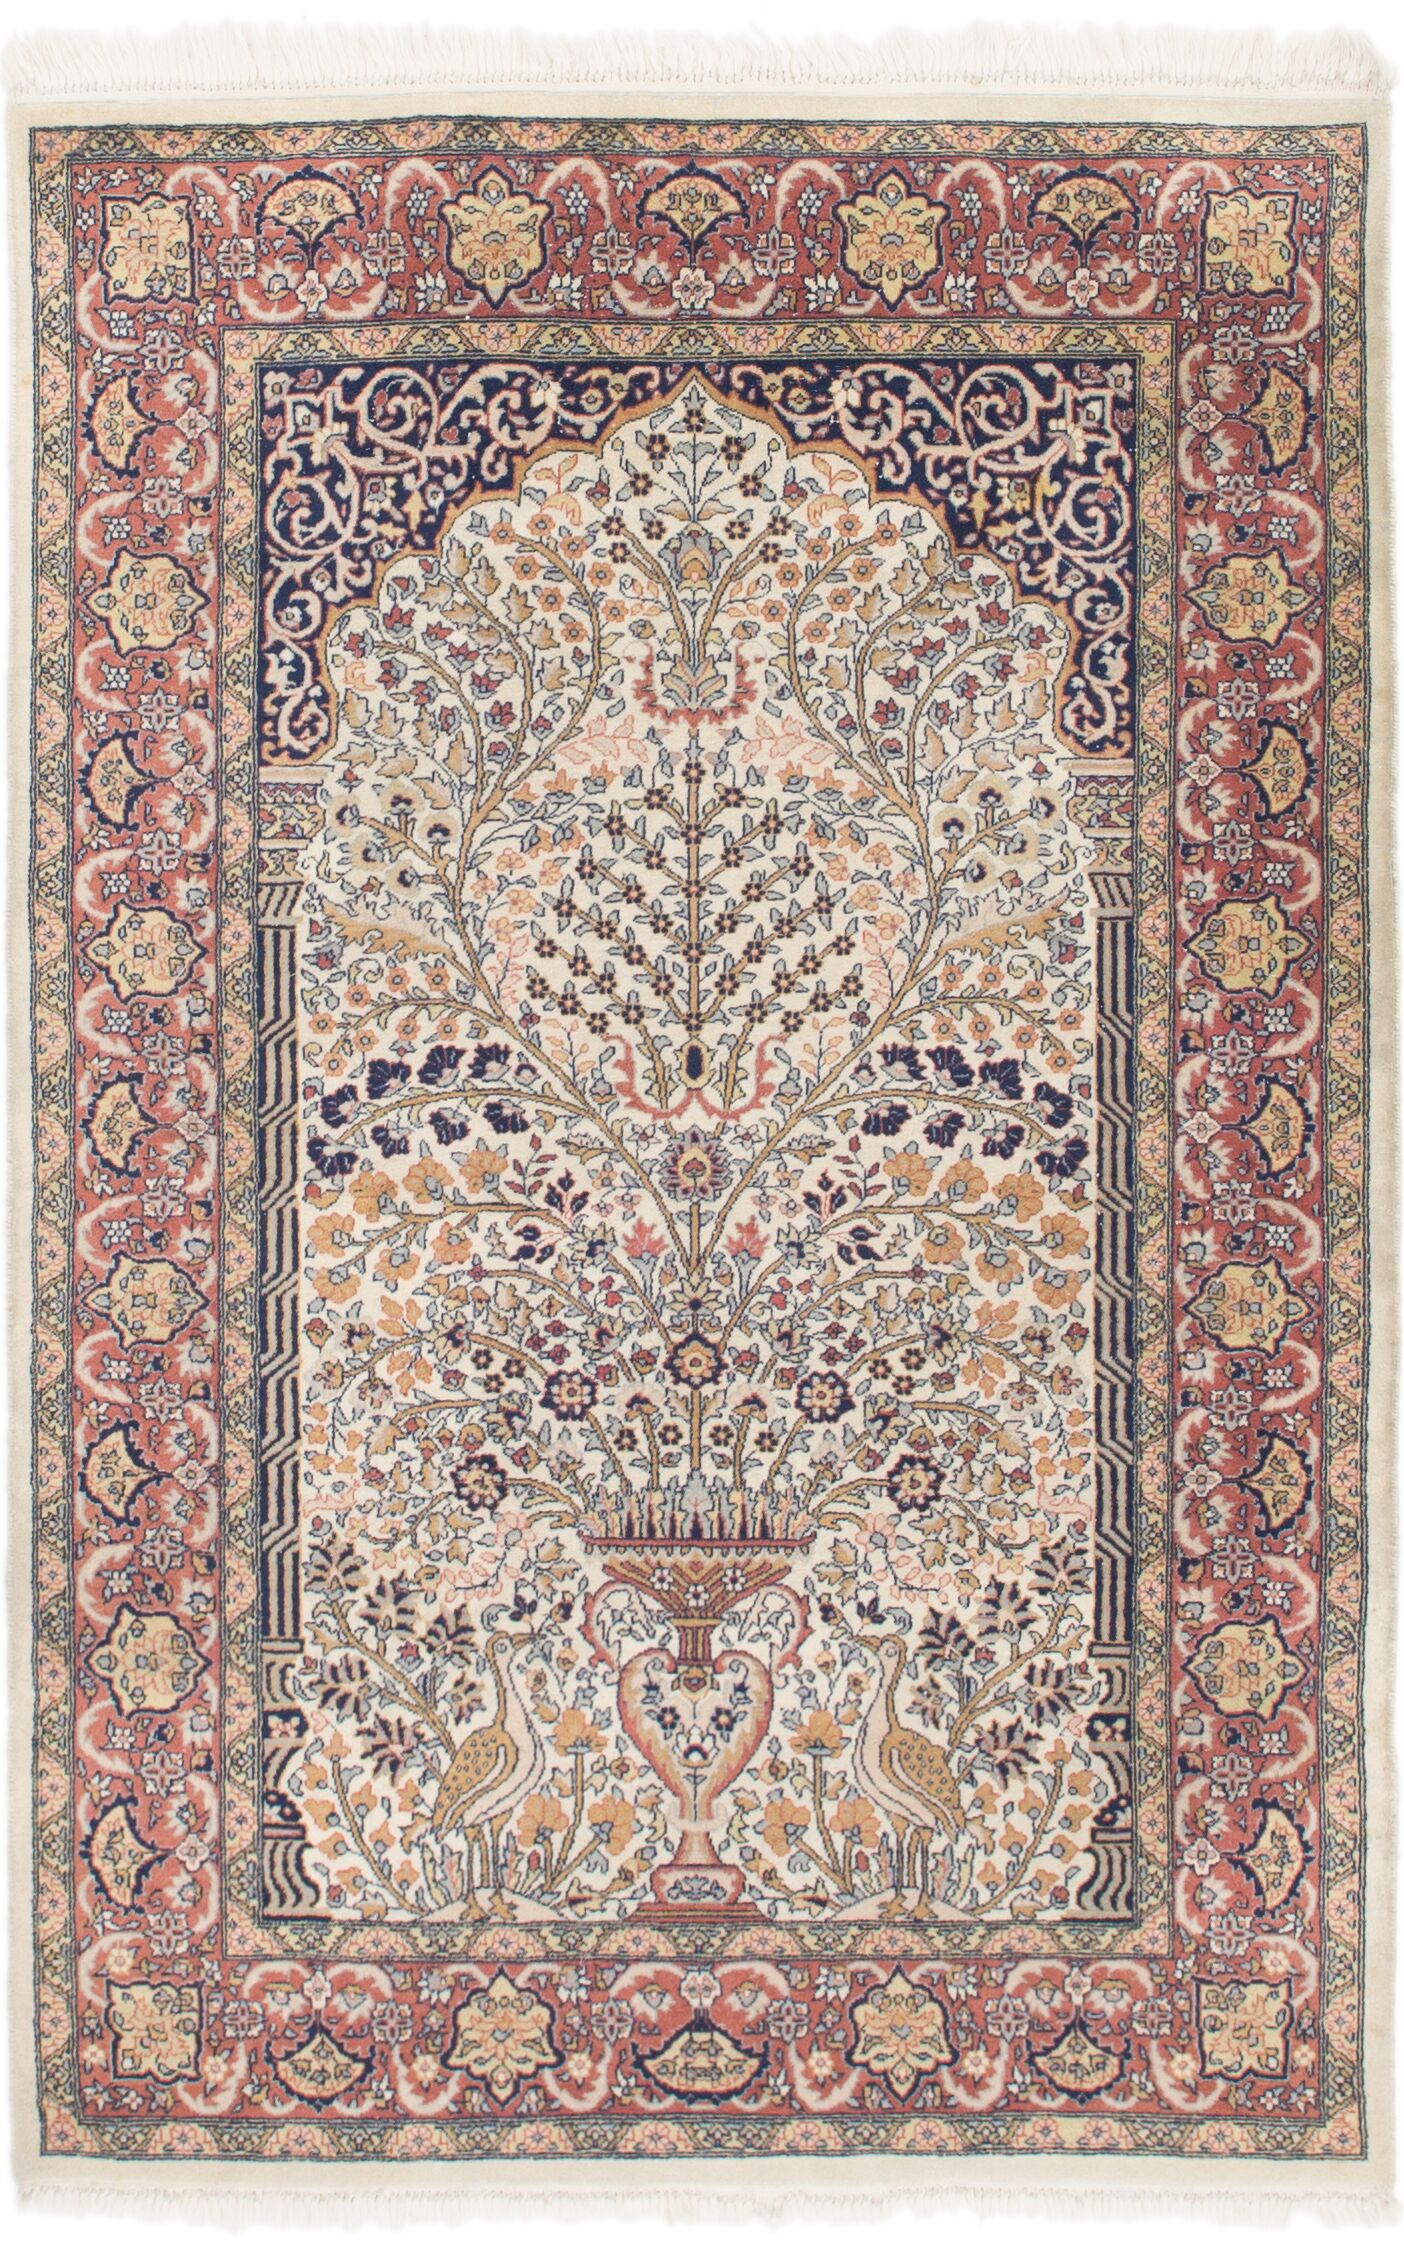 One-of-a-Kind Sarough Hand-Knotted 4'2